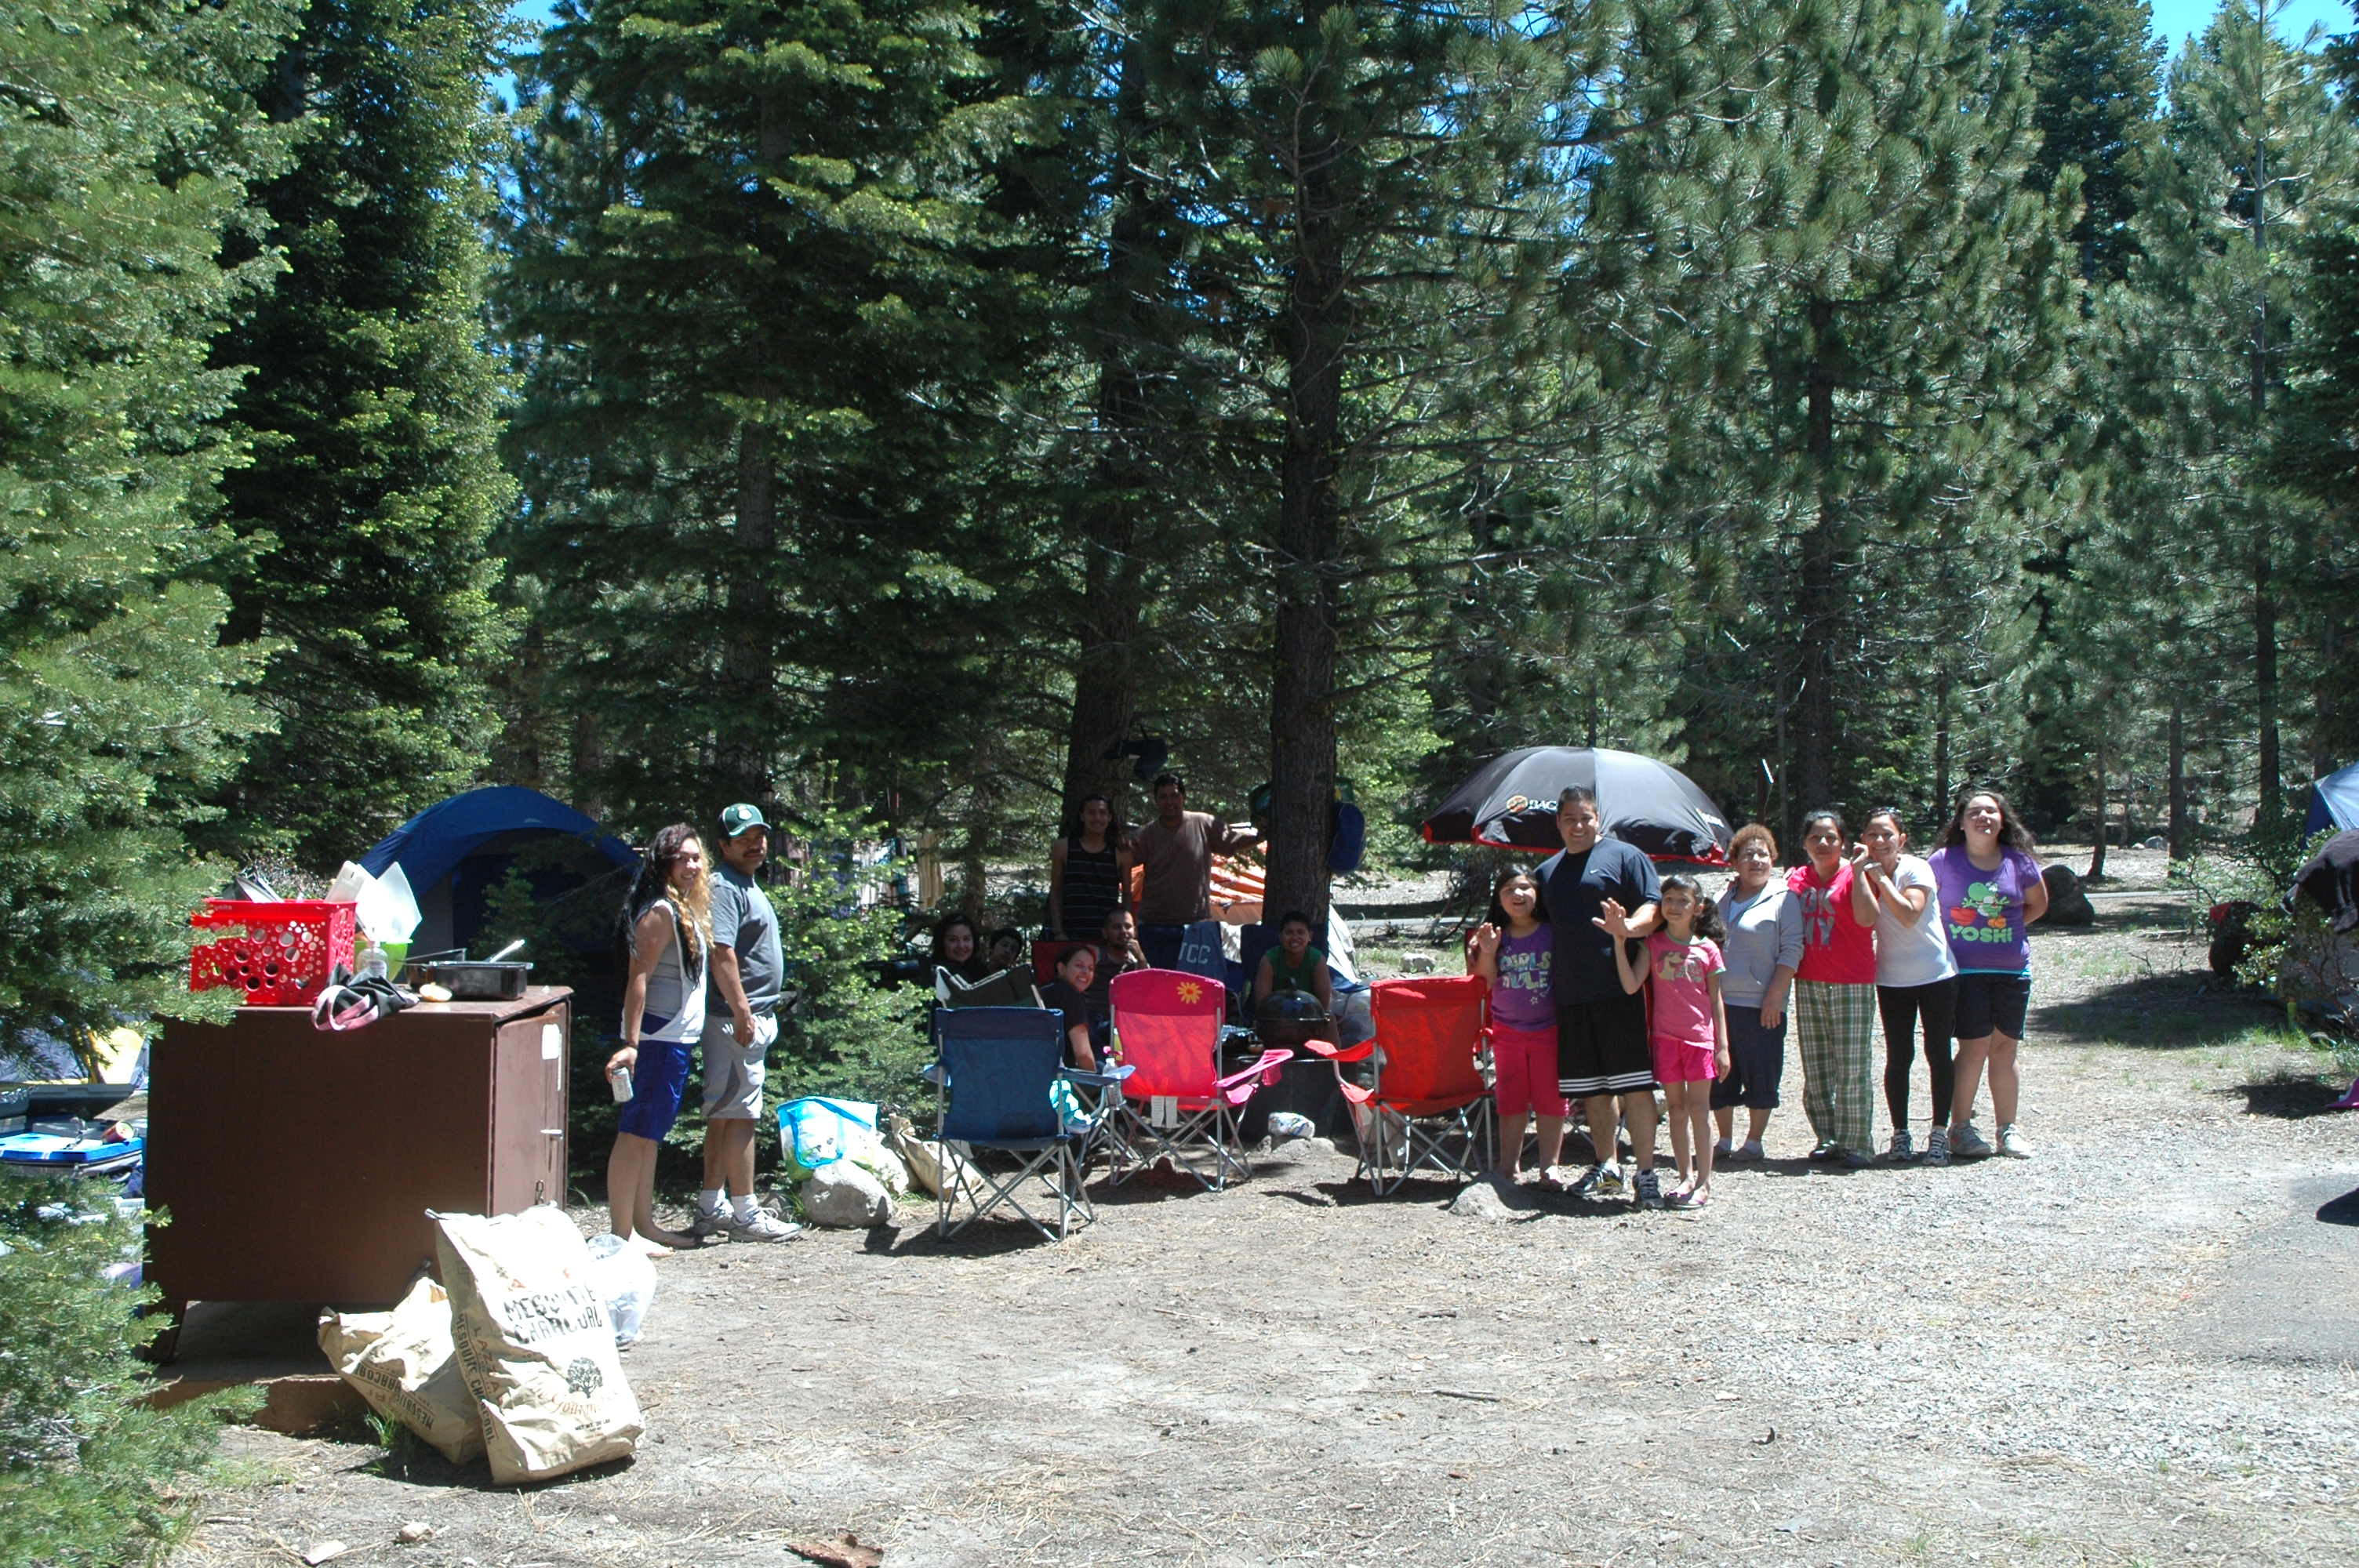 Campers enjoy sunny skies and cool temperatures at Manzanita Lake Campground.